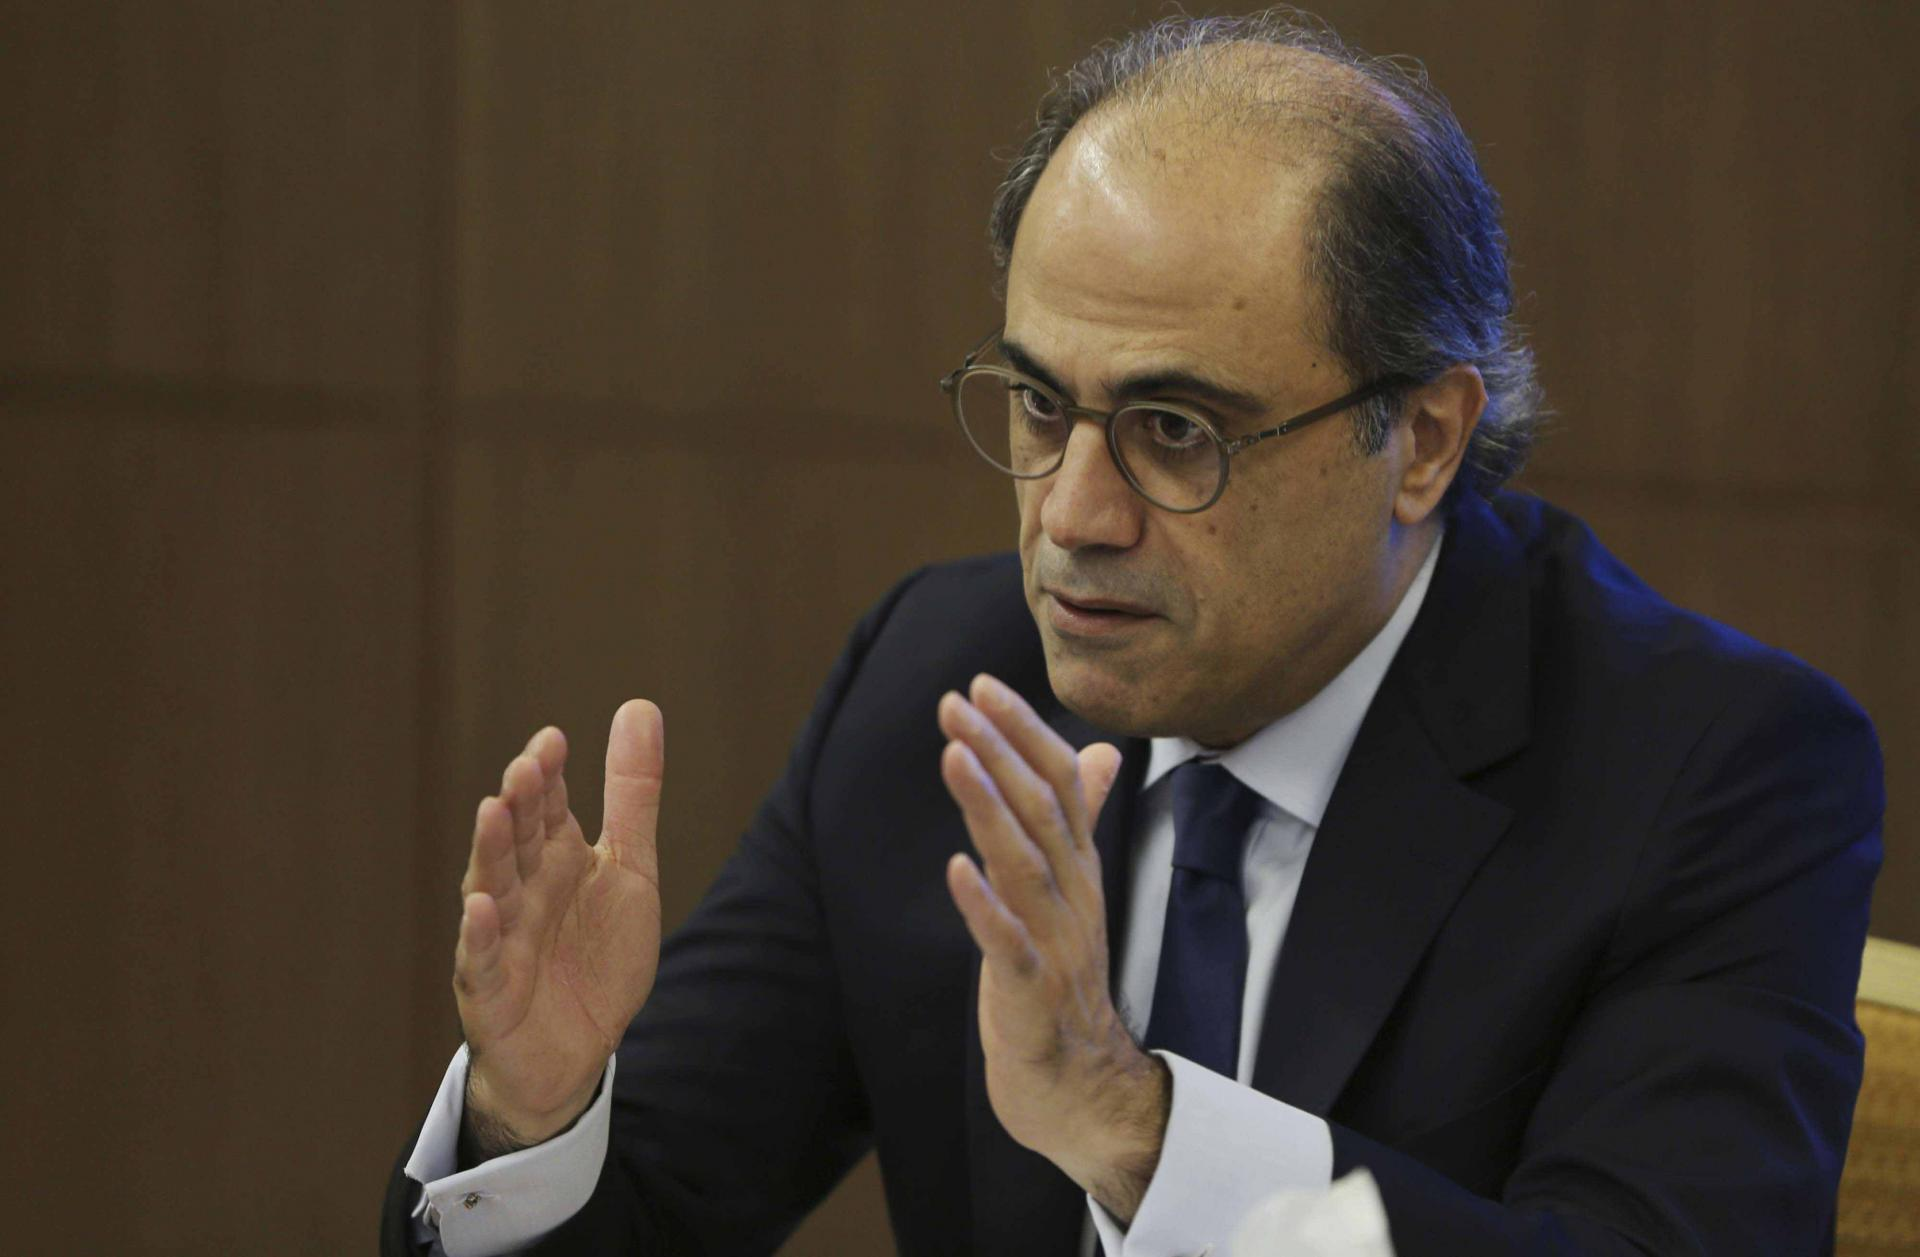 Jihad Azour, the IMF's Mideast and Central Asia director, talks during his press conference in Dubai, United Arab Emirates